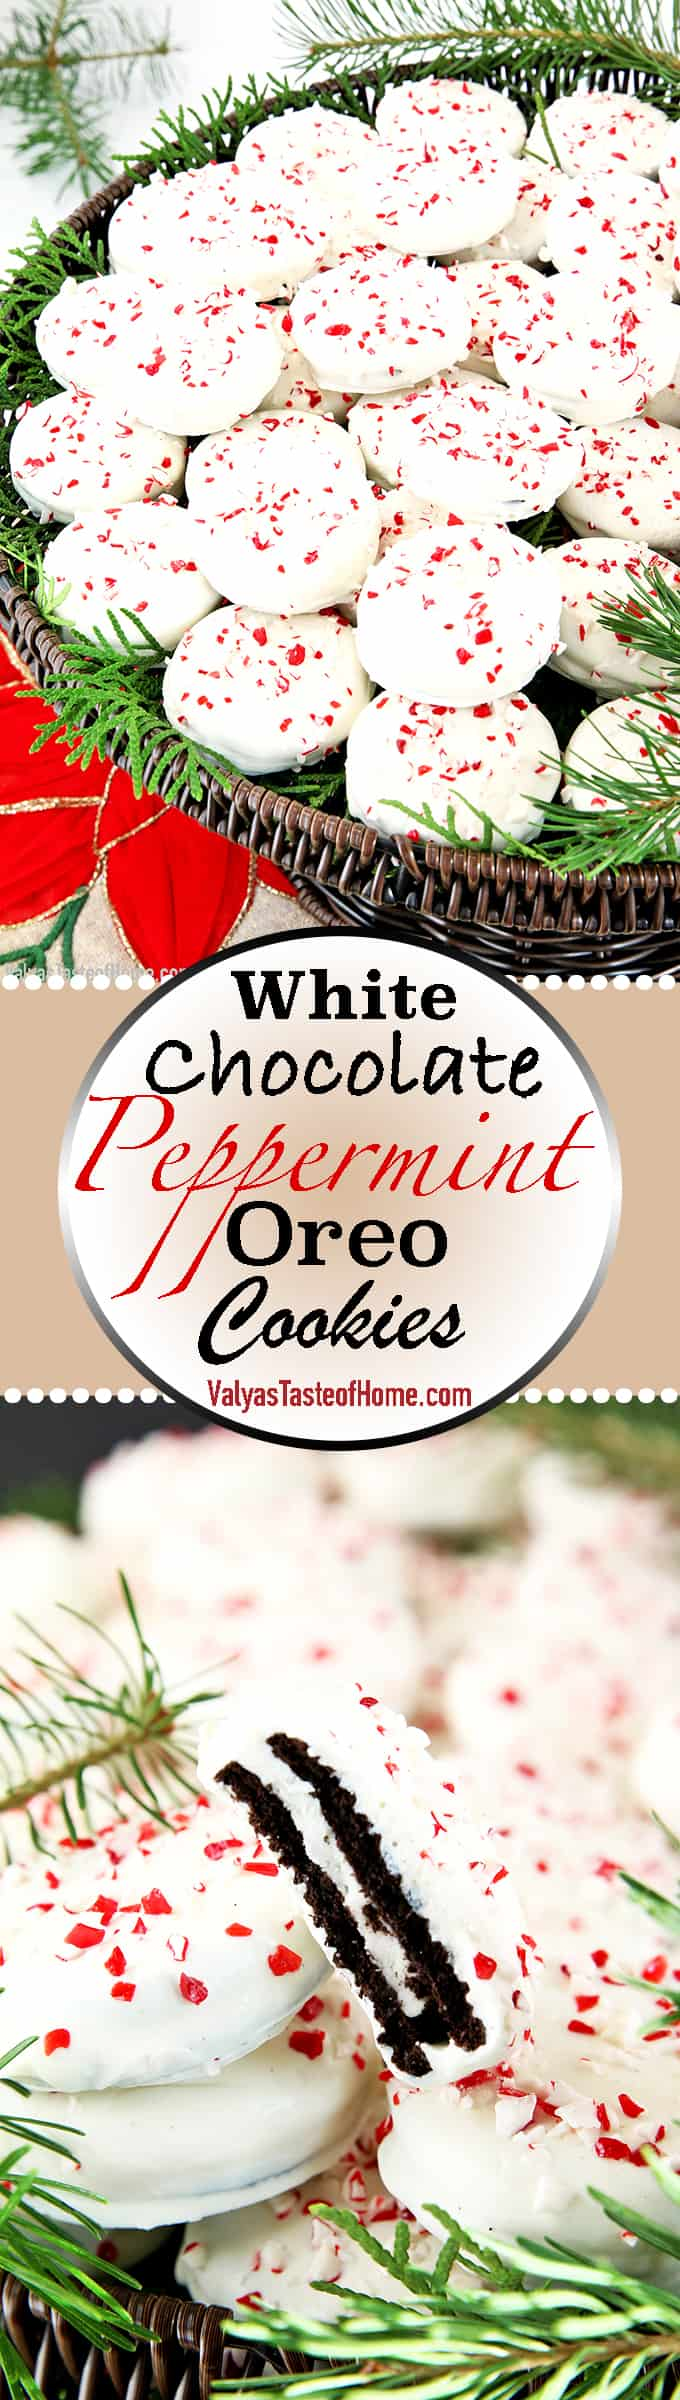 Oreo cookies dipped in white chocolate and sprinkled with crushed peppermint candies are festive, very attractive and beautiful display on a party tray. And kids have a lot of fun together.